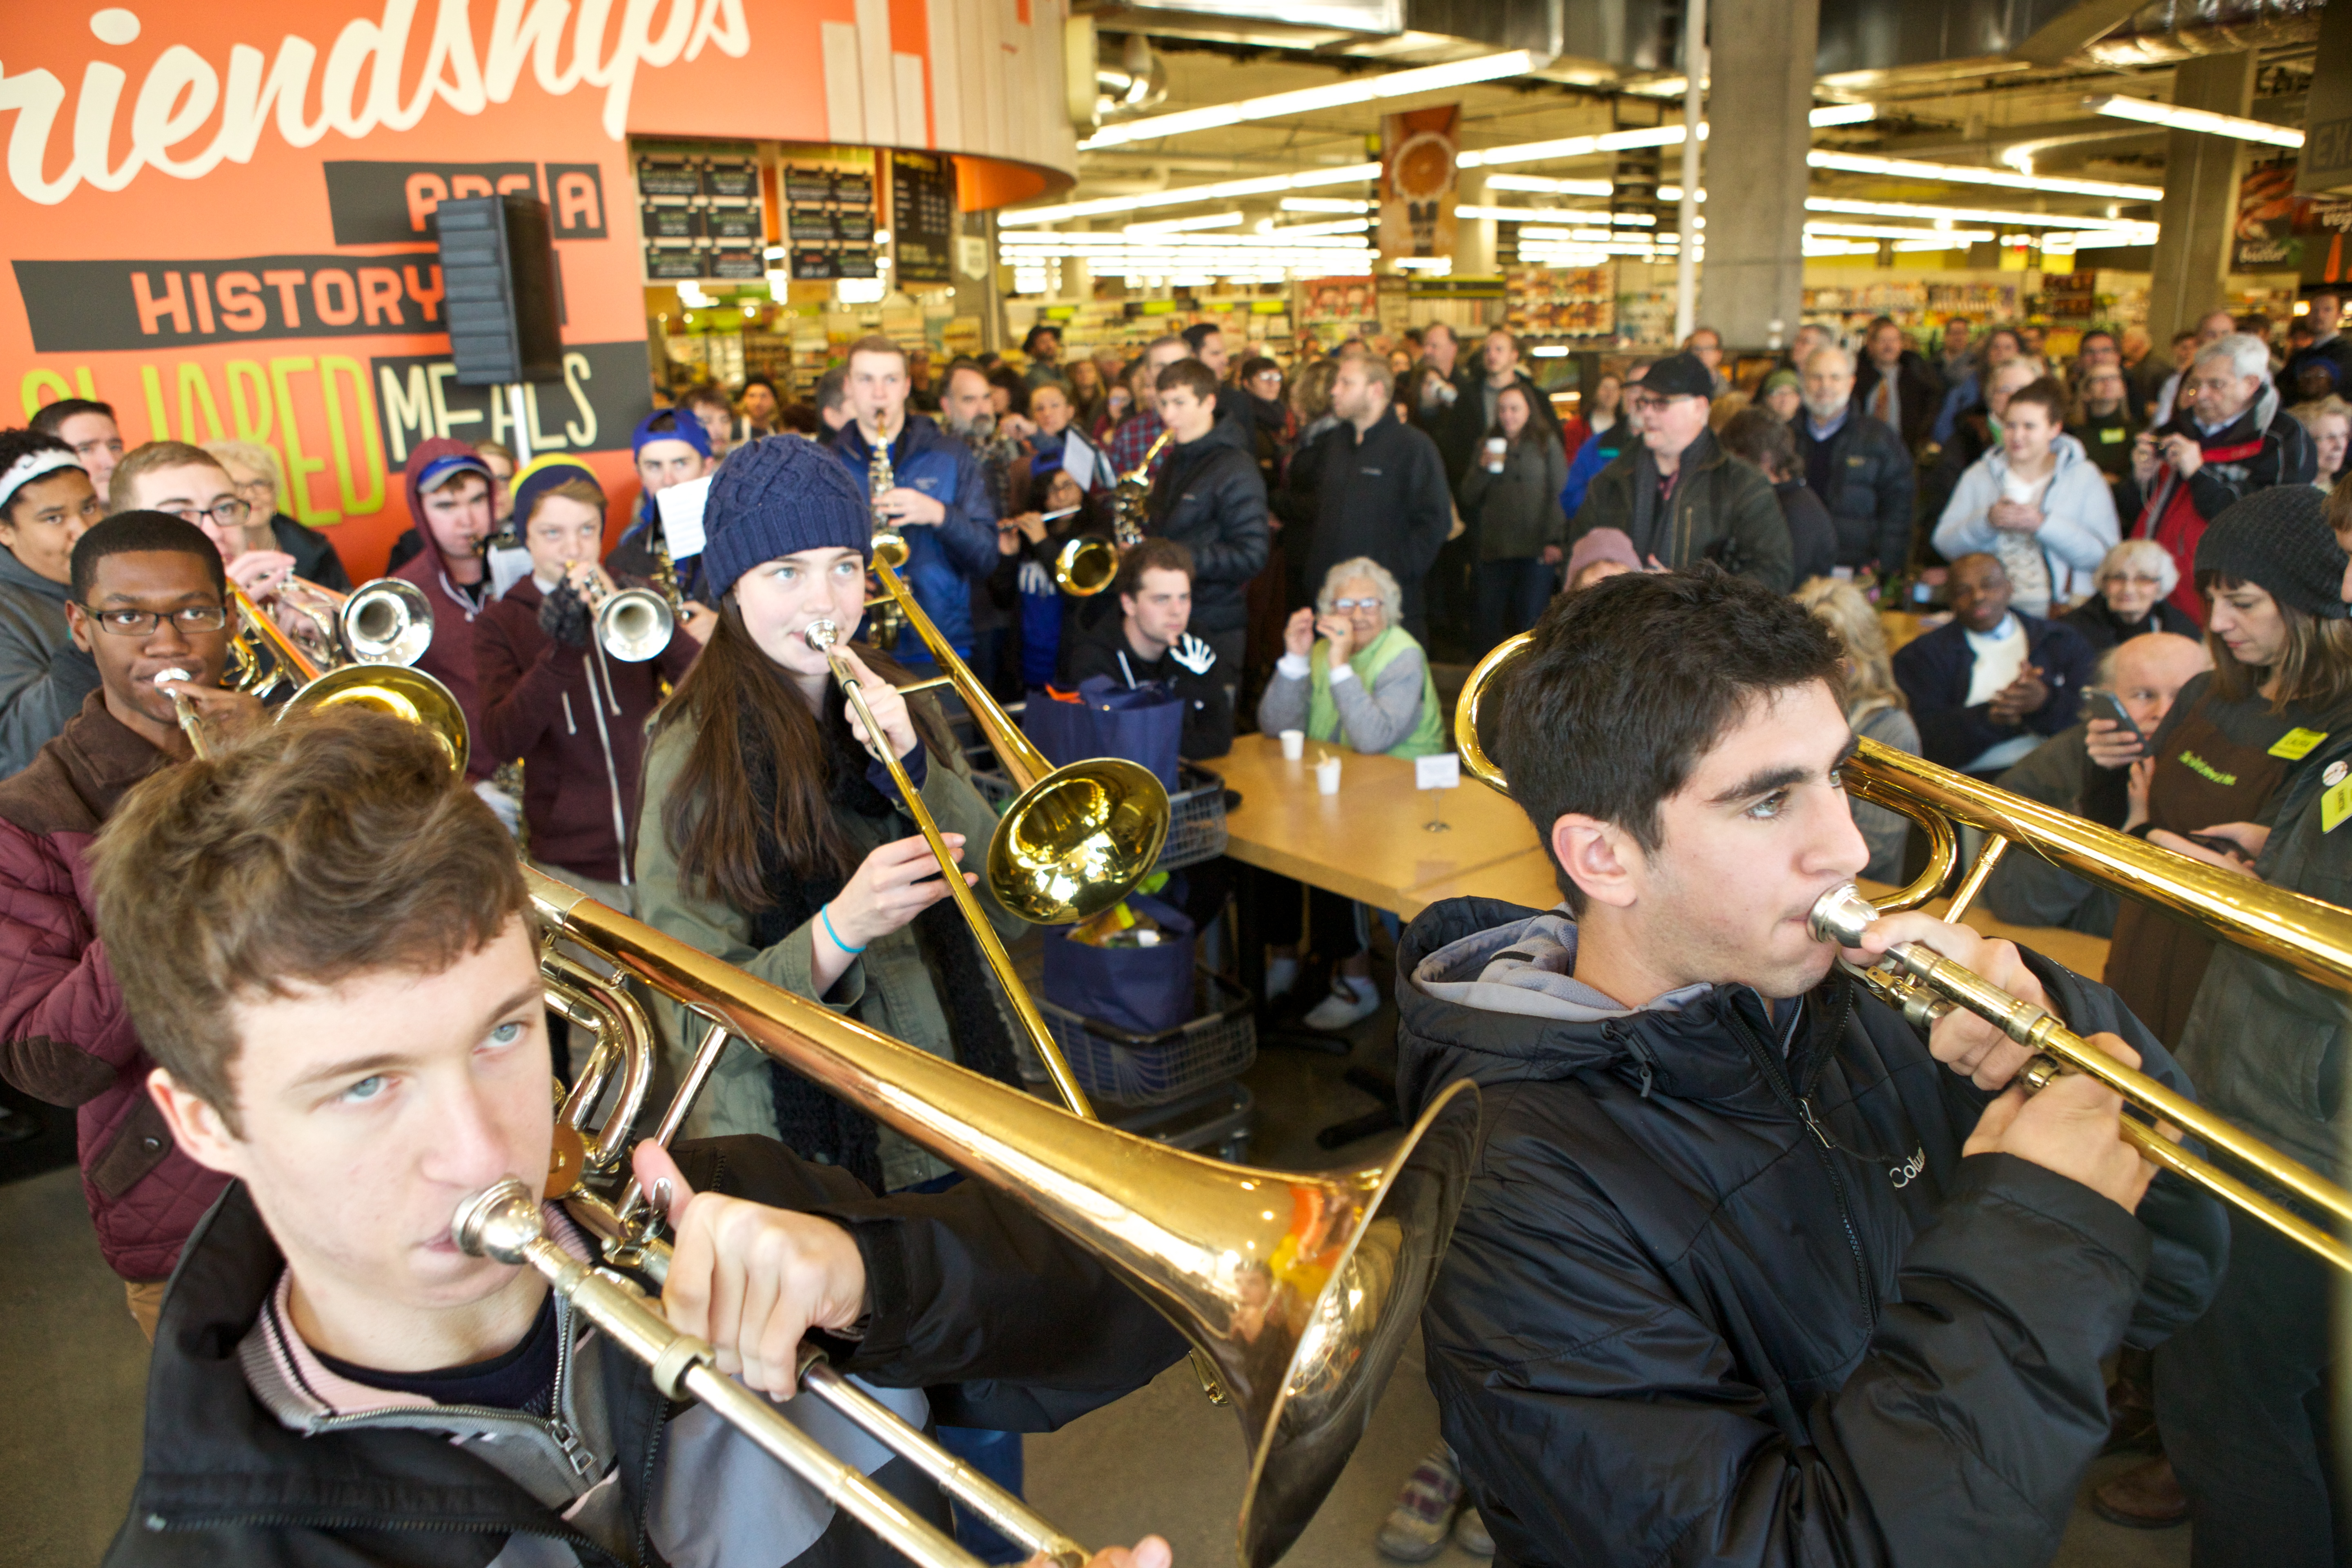 a marching band inside a new seasons market